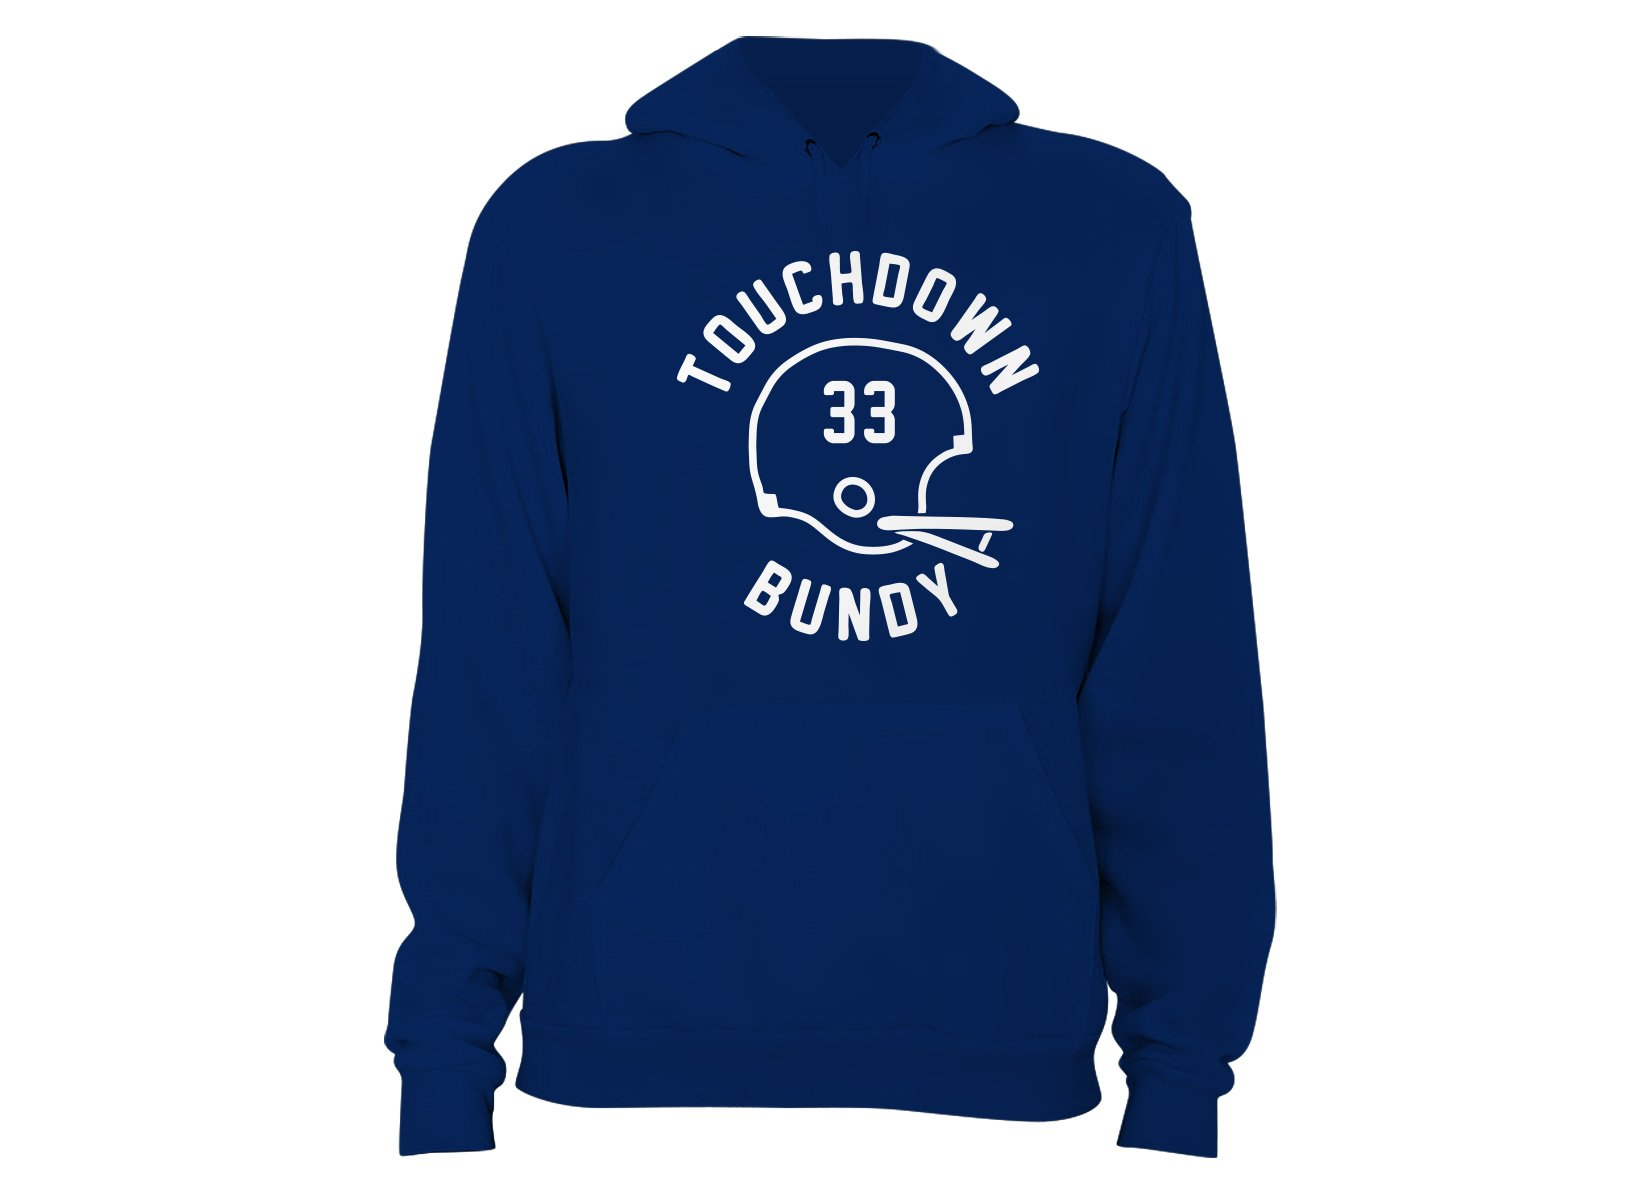 Touchdown Bundy on Hoodie